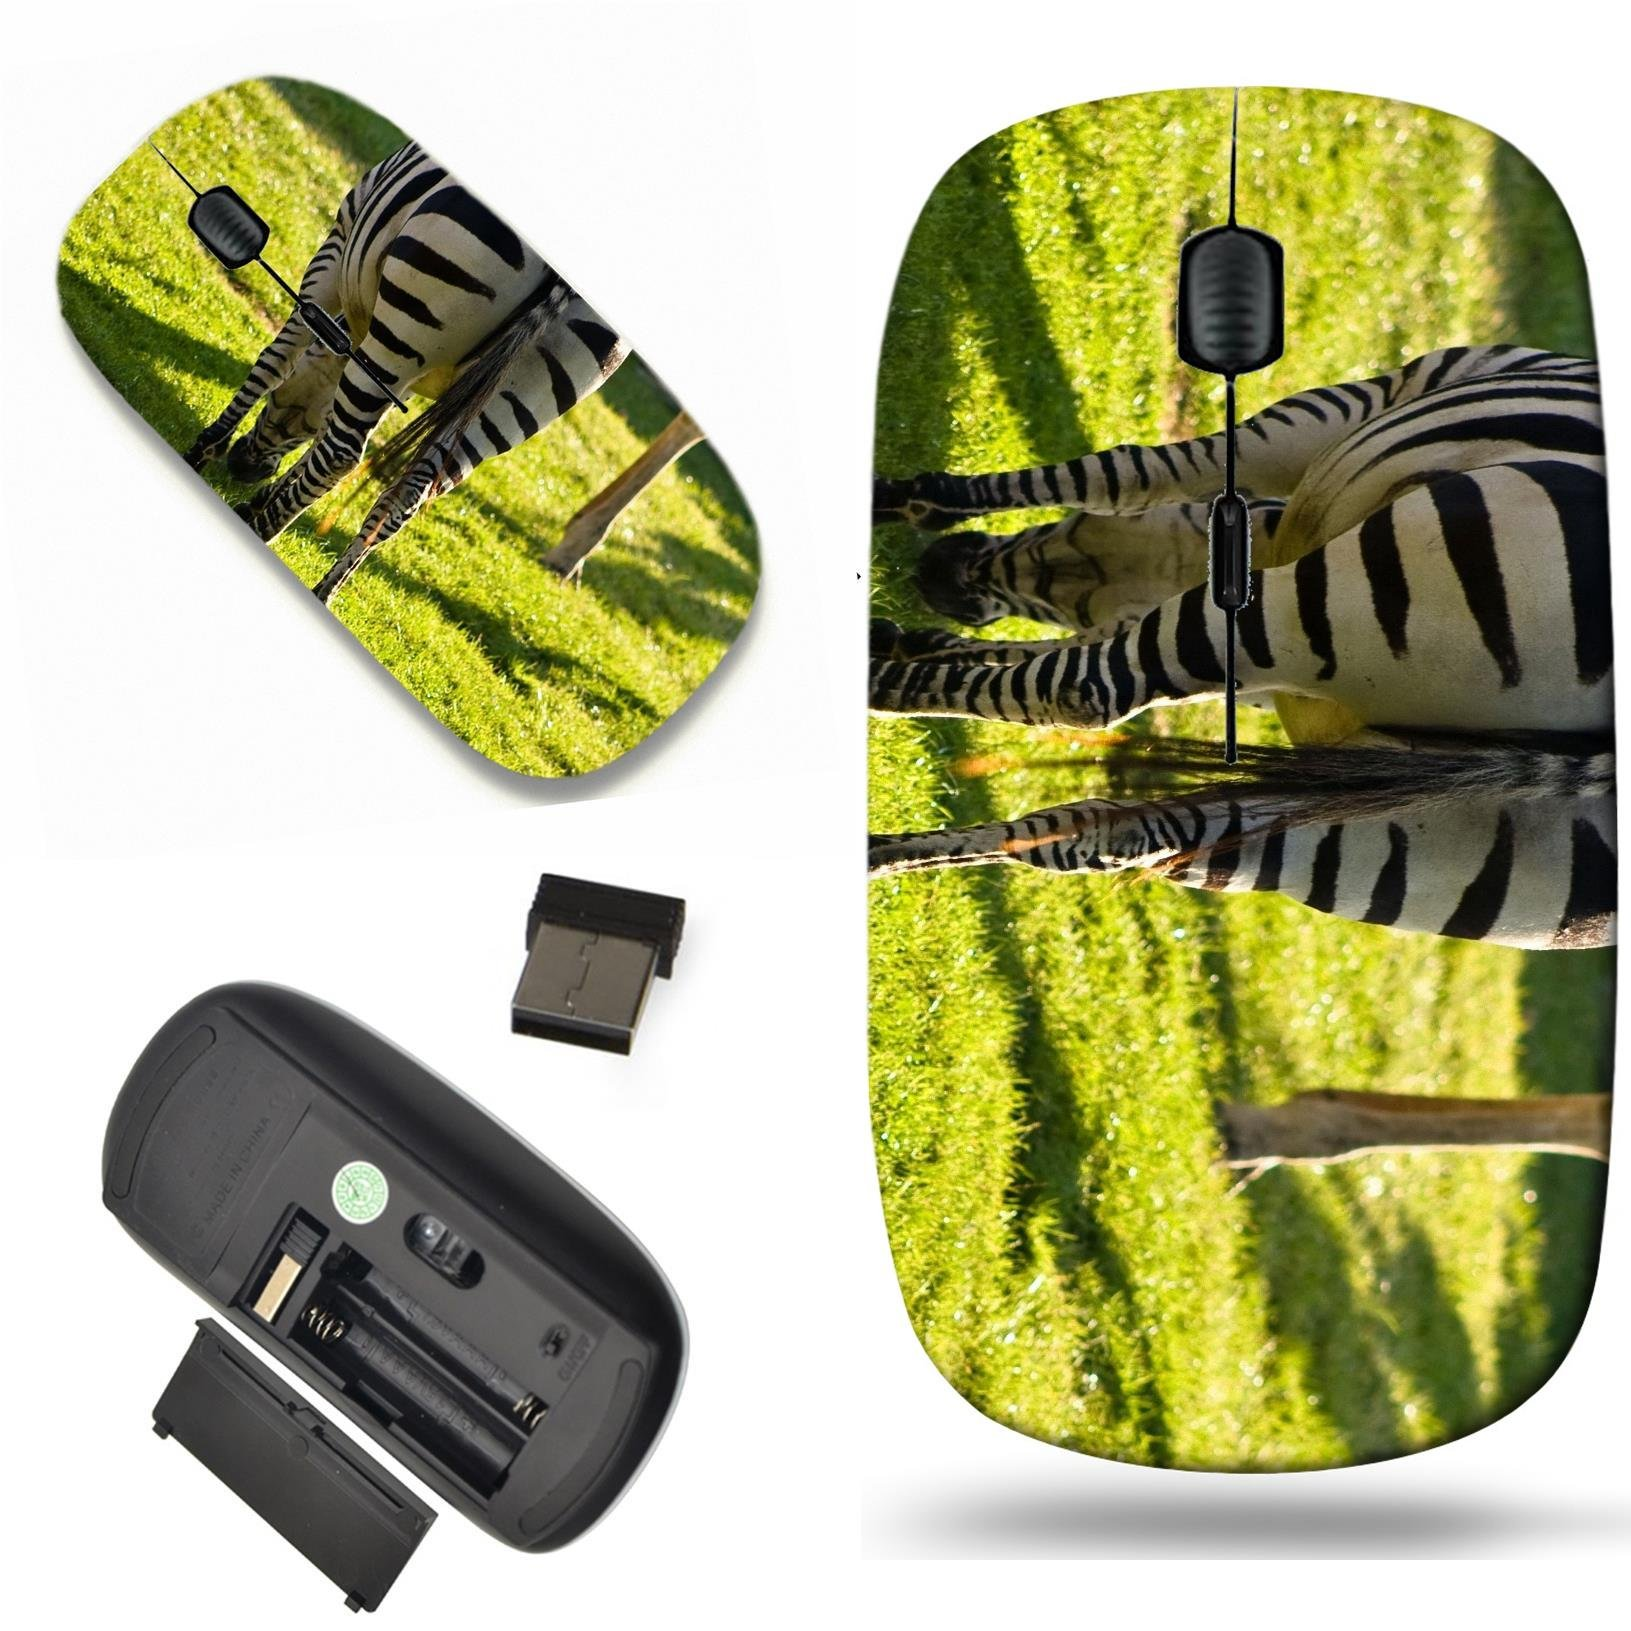 Luxlady Wireless Mouse Travel 2.4G Wireless Mice with USB Receiver, 1000 DPI for notebook, pc, laptop, computer, mac design IMAGE ID 3905689 Zebras are African equids best known for their distinctive